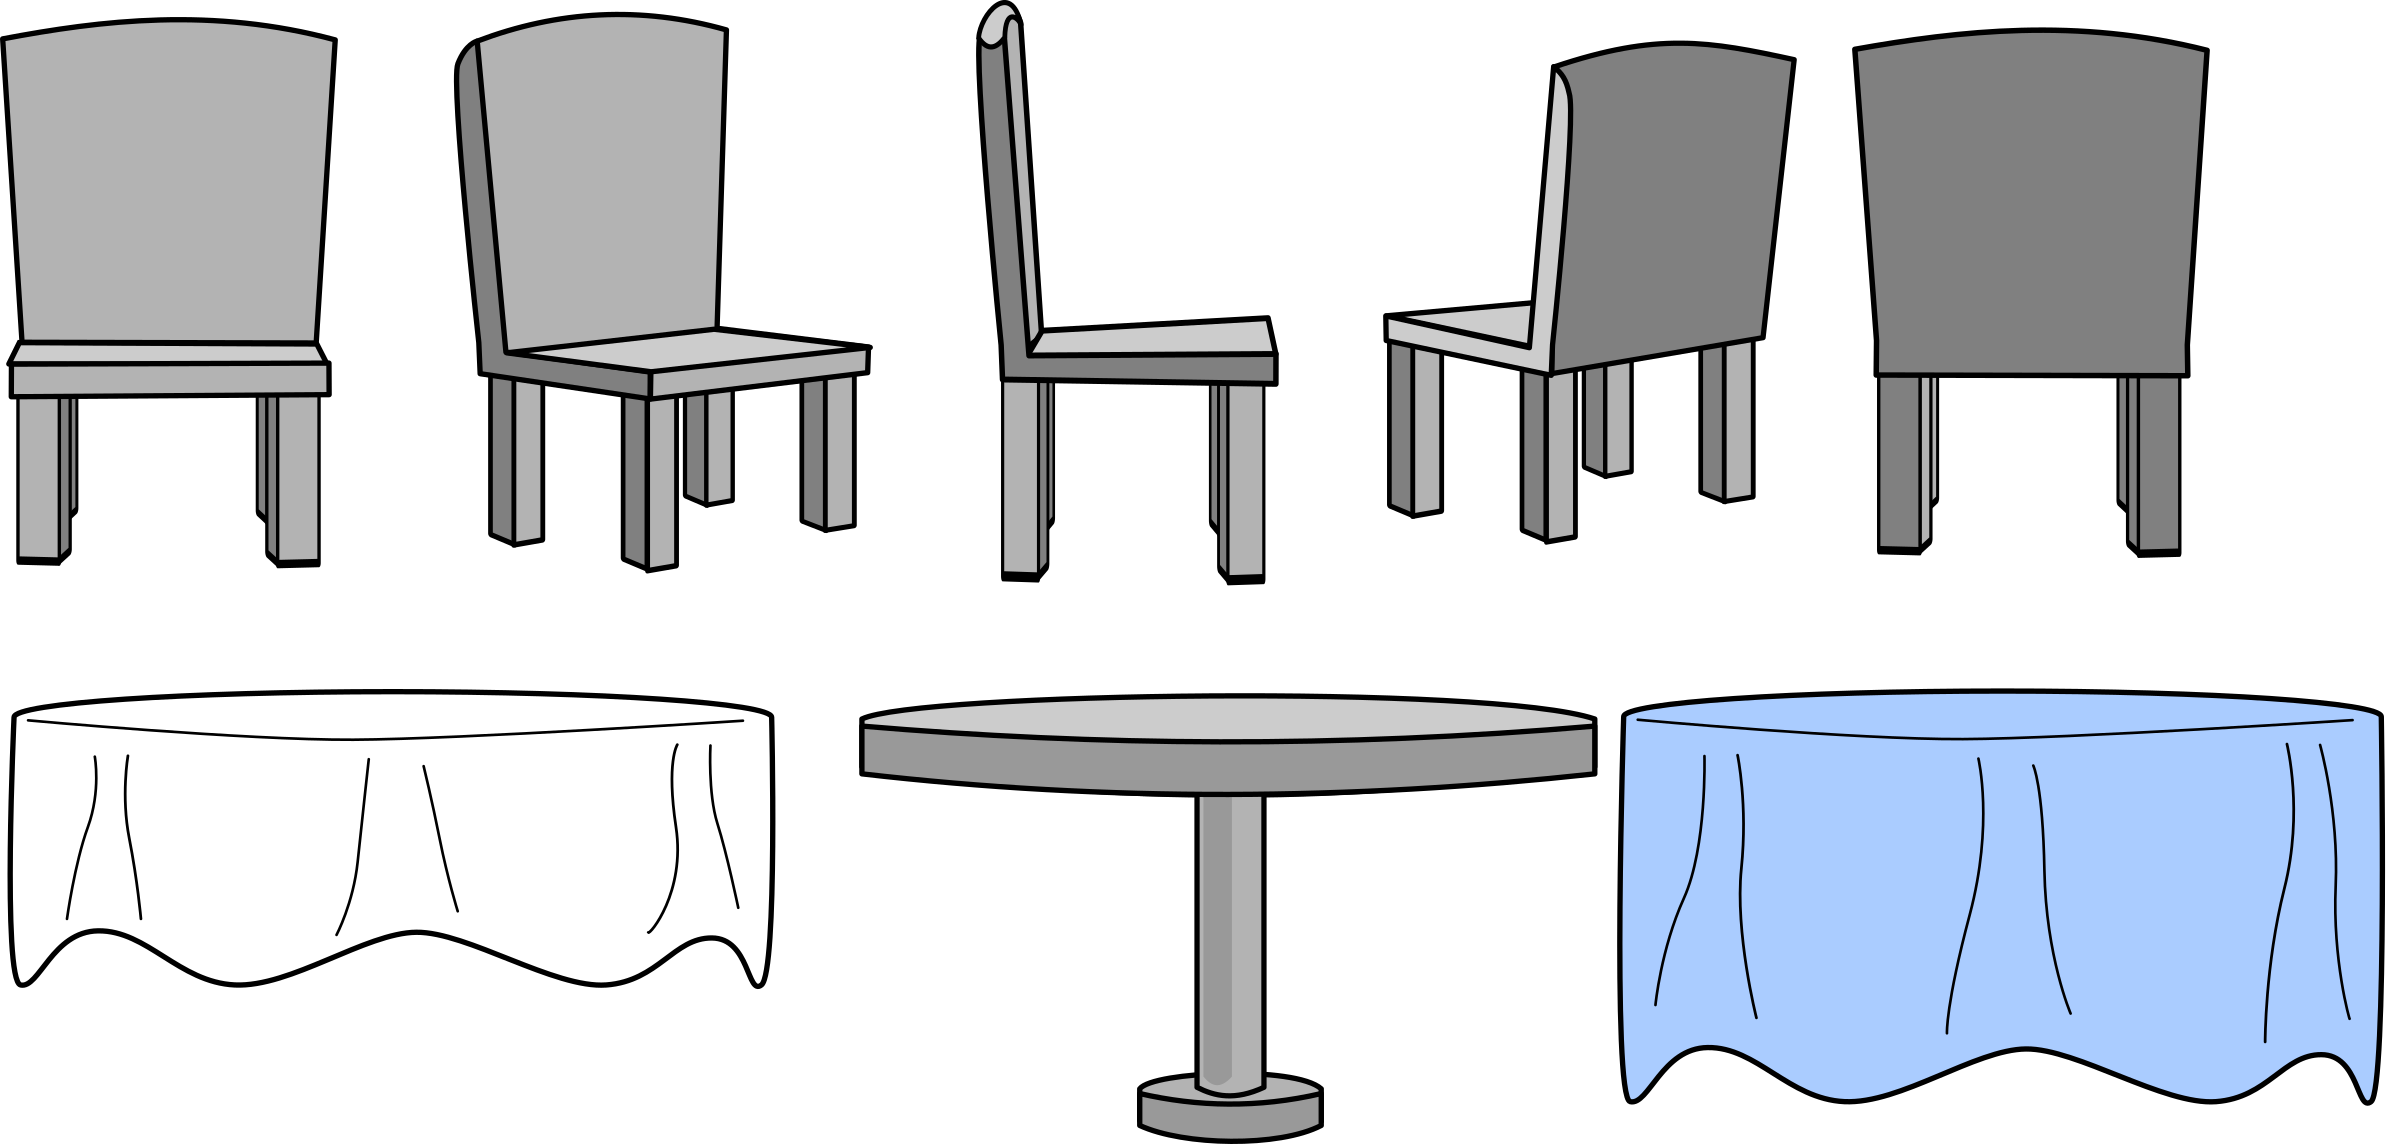 Kitchen Table and Chairs with Table Cloth by VexStrips